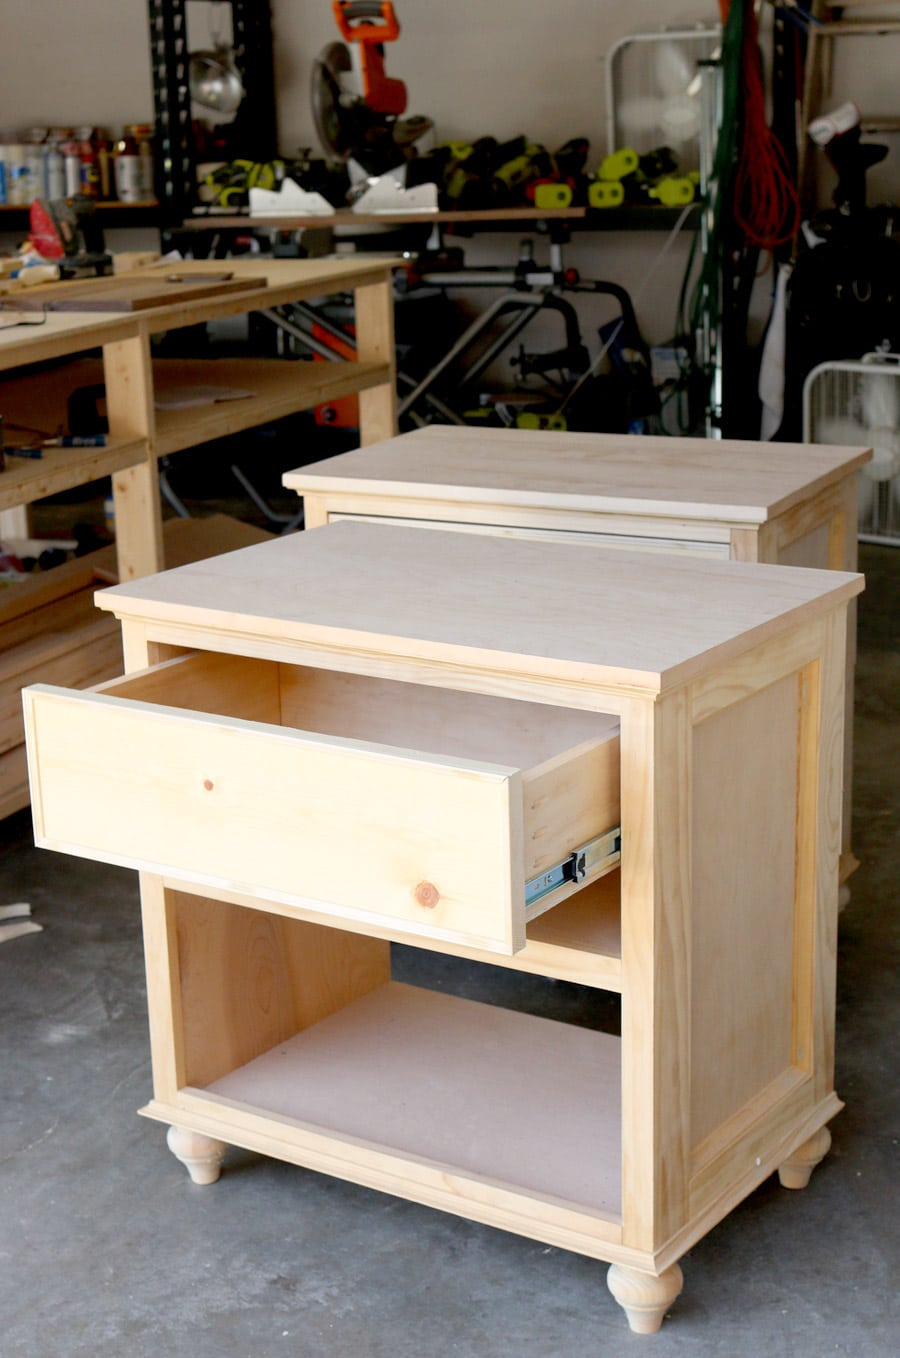 Bedside table design plans - How To Build A Diy Bedside Table Nightstand